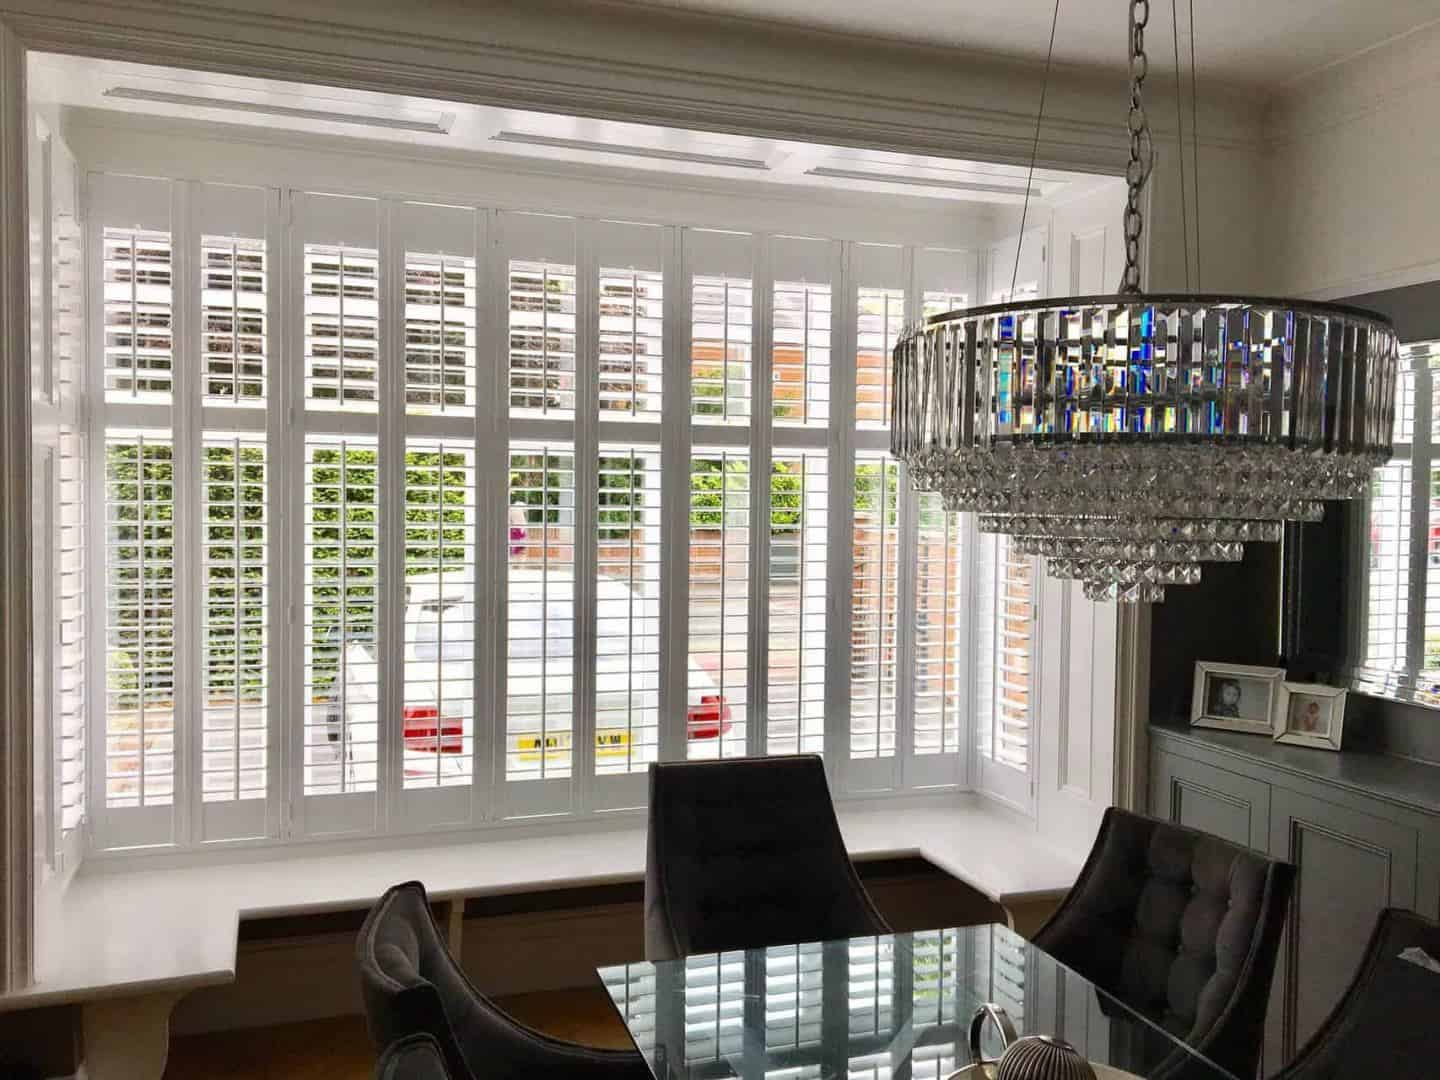 Diamond Shutters in a dining room - how to choose the right window shutters for your home